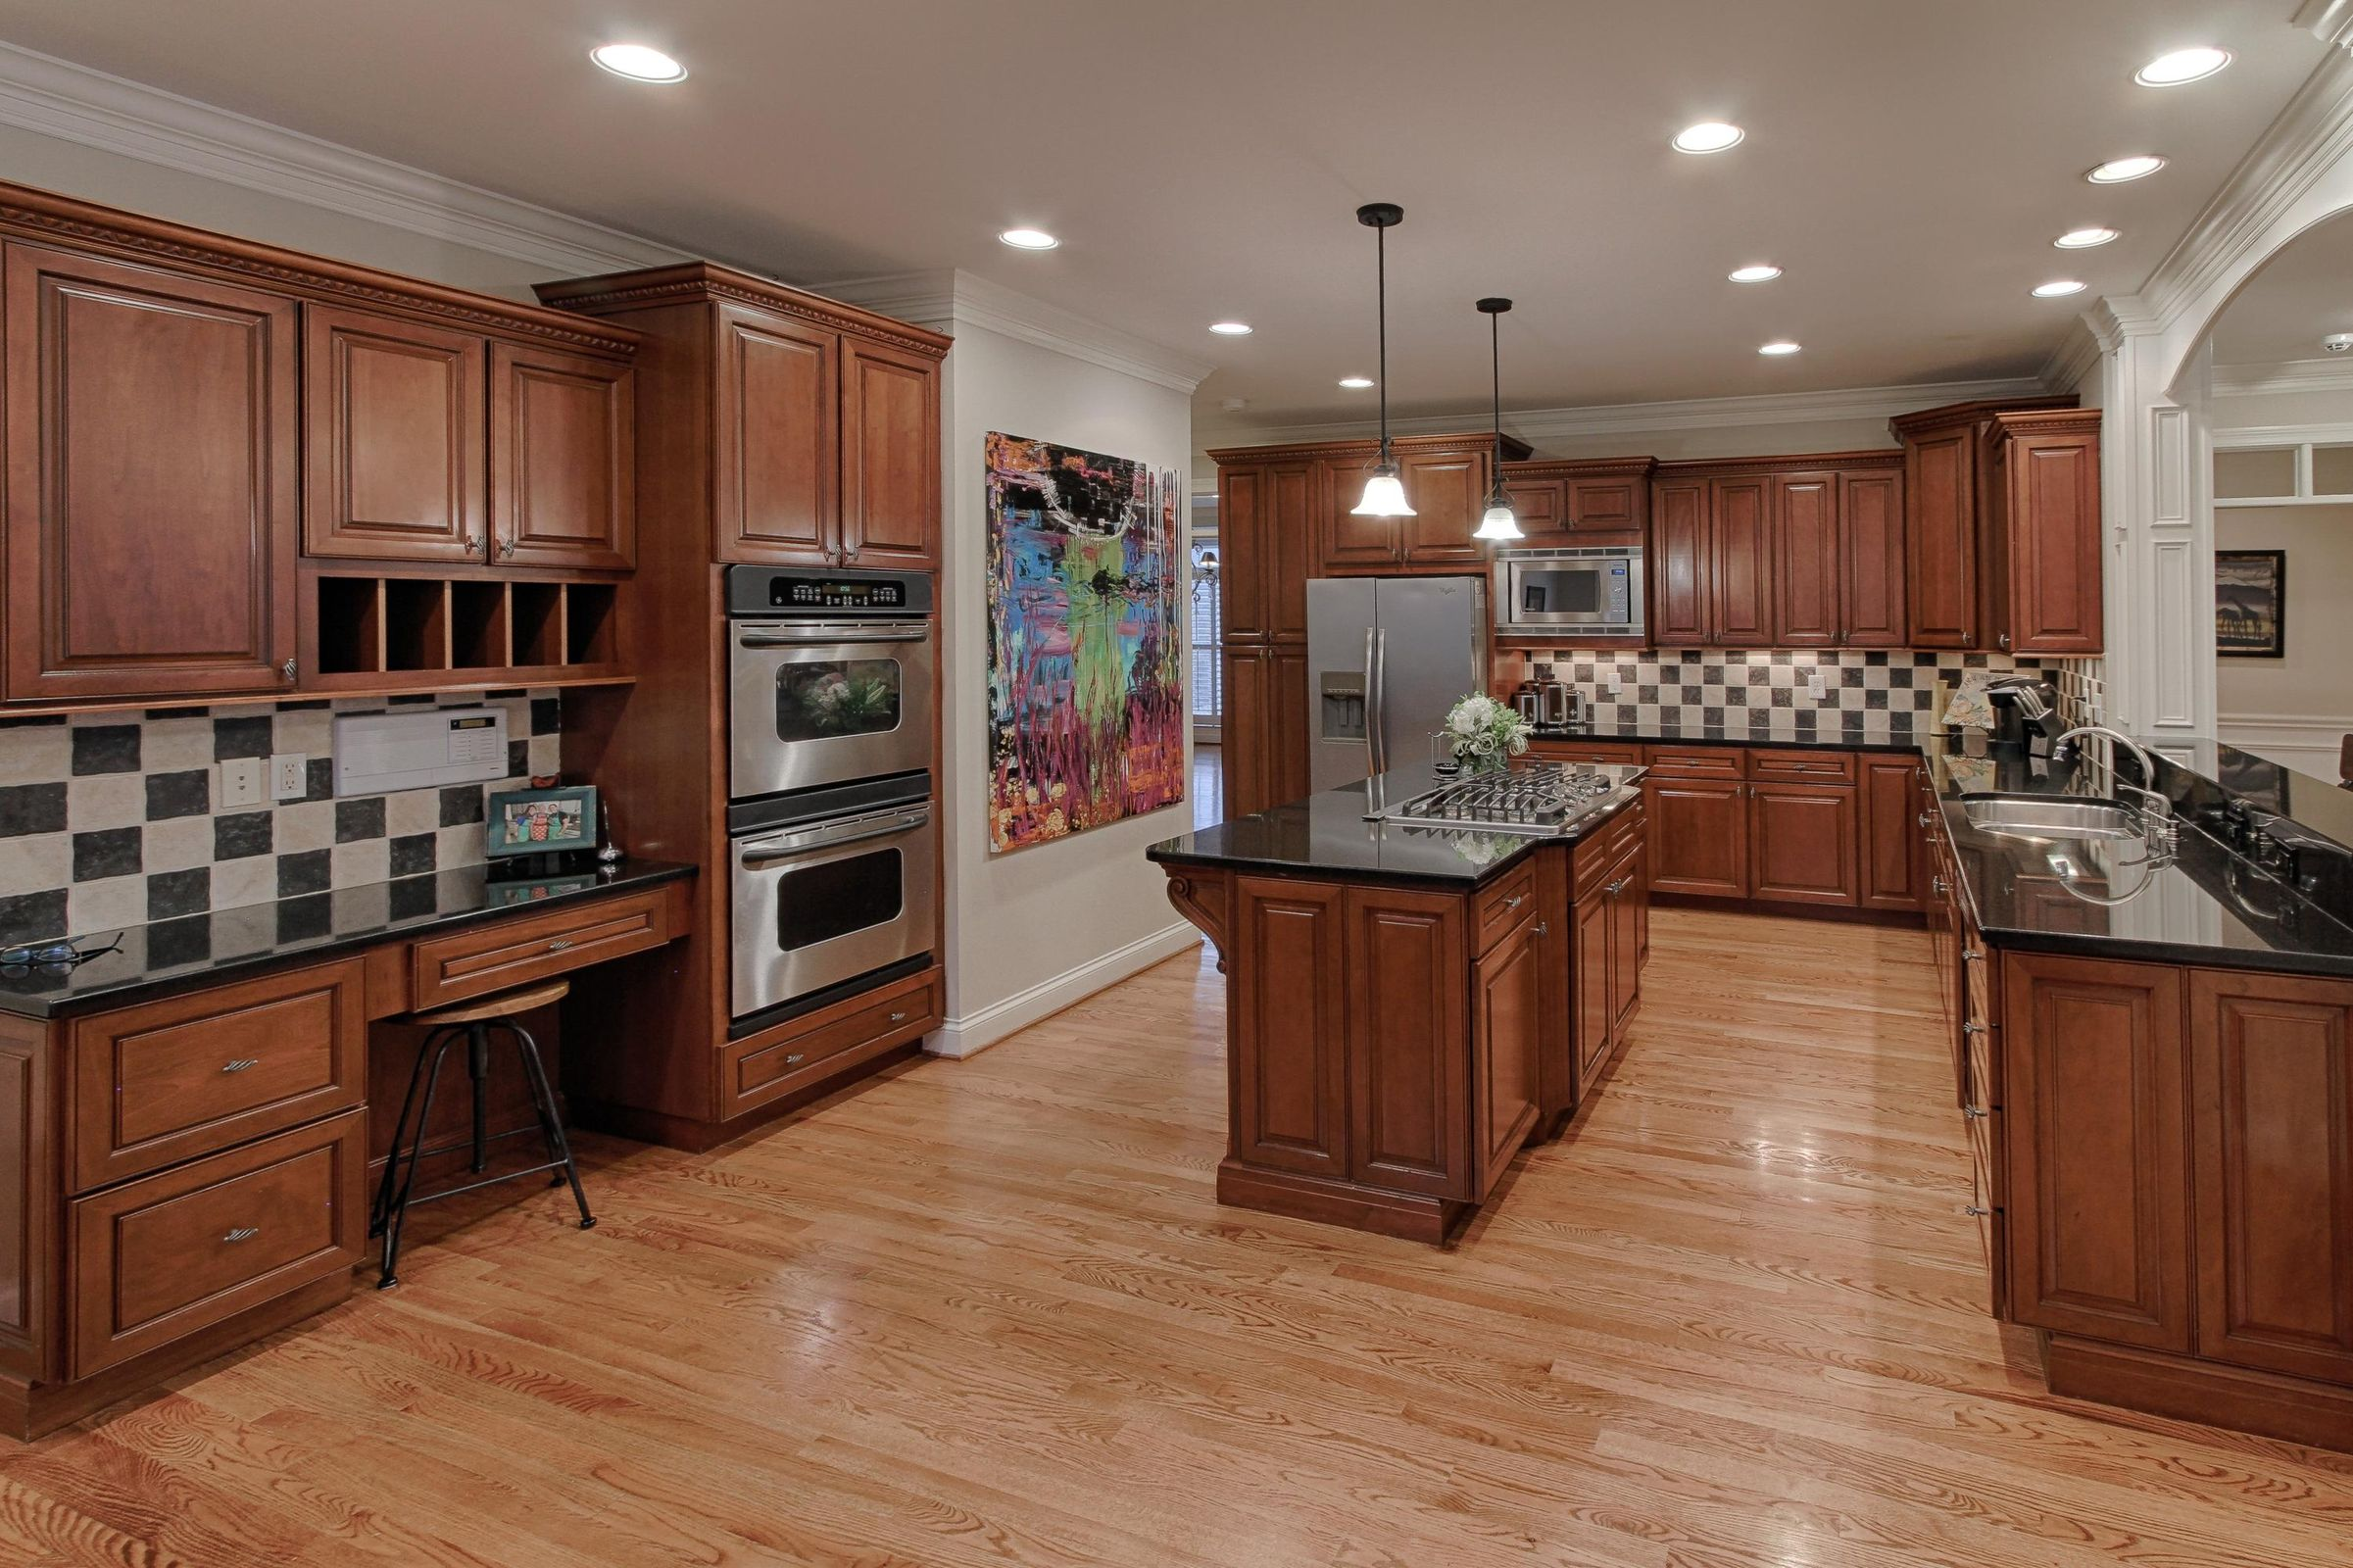 Kitchen with Double Ovens and Gas Stove